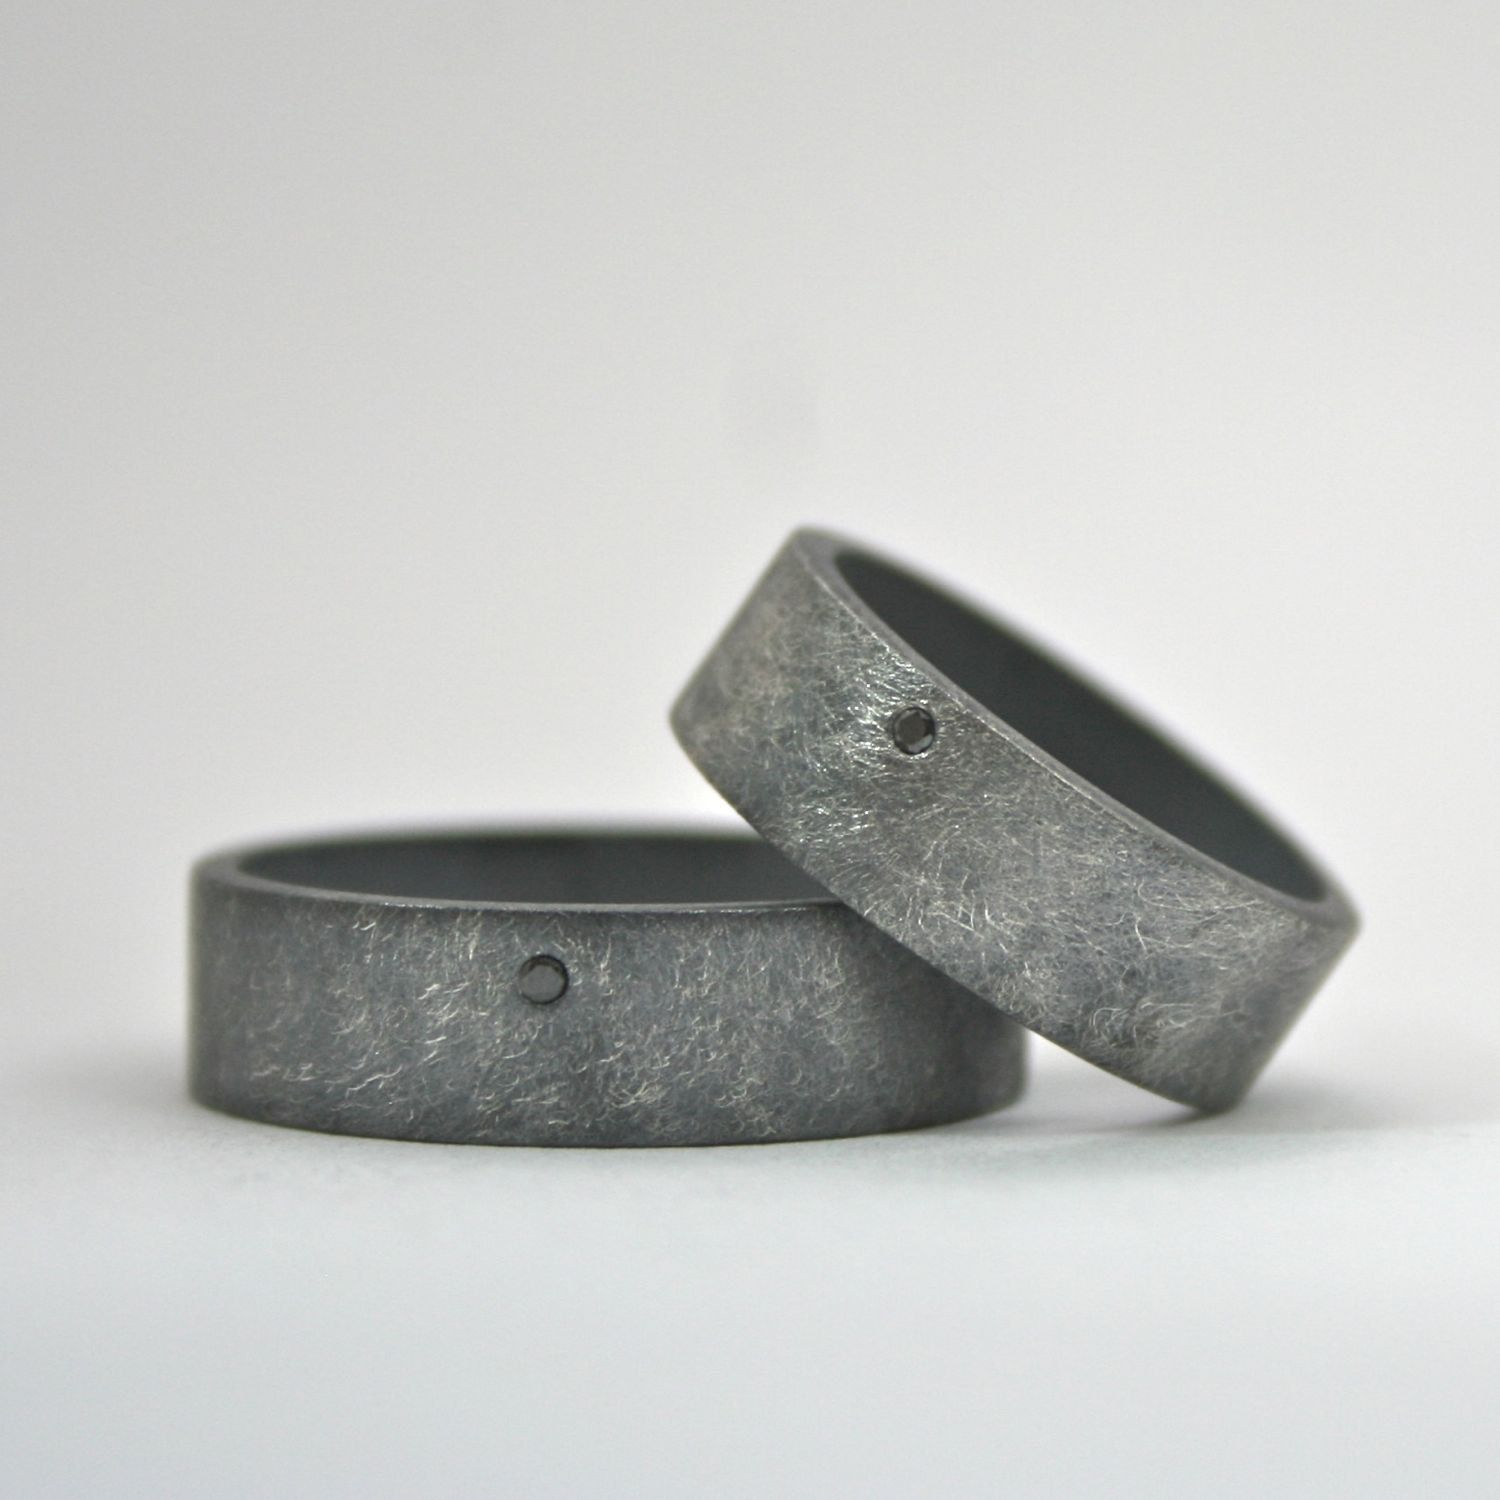 black diamond ring set - wedding bands - oxidized finish - wide